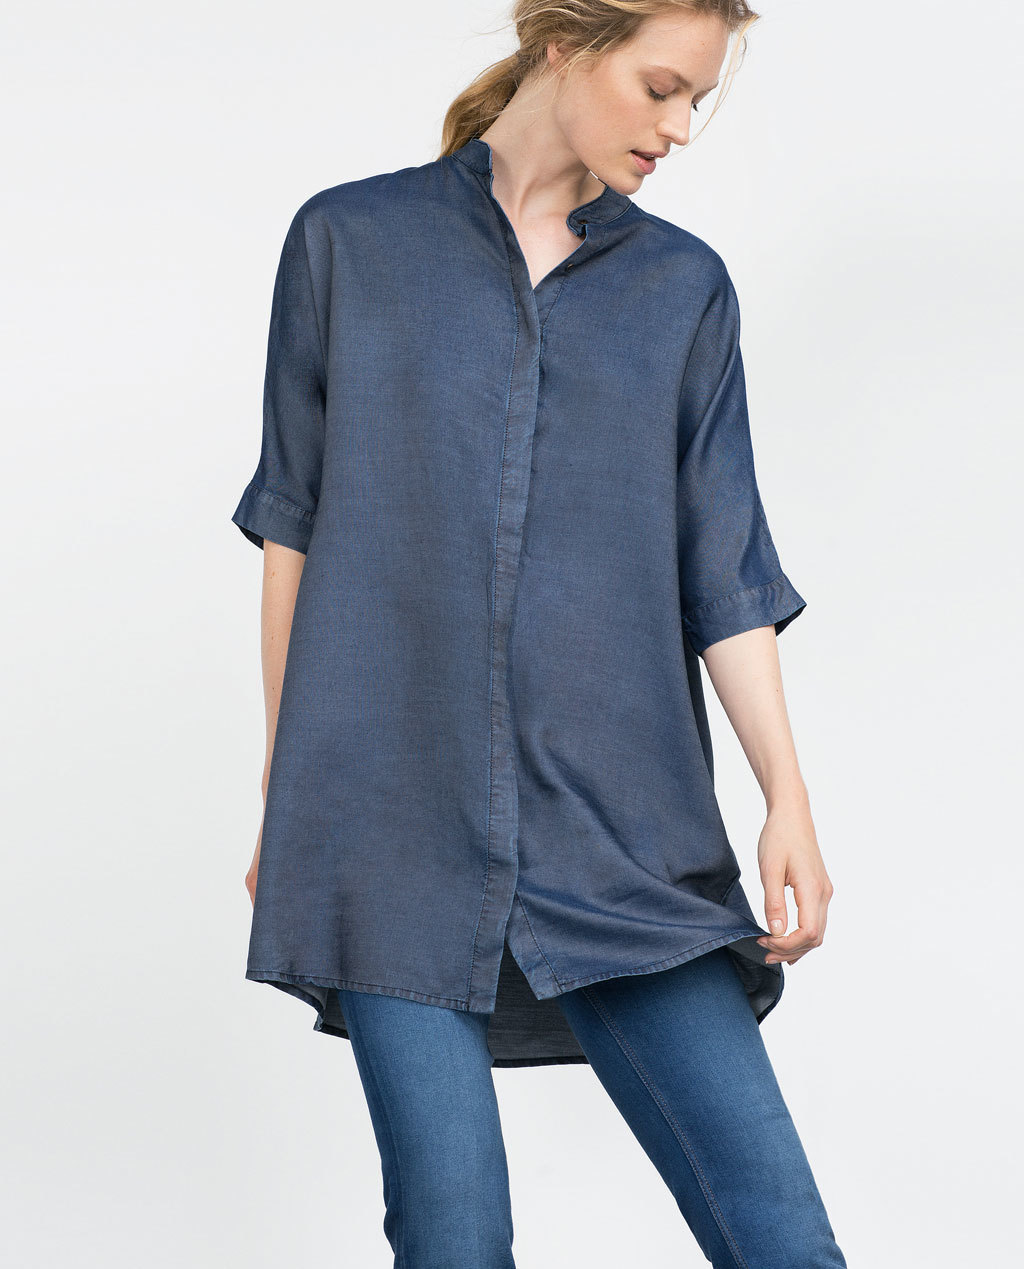 Oversize Longline Shirt - neckline: shirt collar/peter pan/zip with opening; pattern: plain; style: shirt; predominant colour: navy; occasions: casual, creative work; fibres: viscose/rayon - 100%; fit: loose; length: mid thigh; sleeve length: 3/4 length; sleeve style: standard; pattern type: fabric; texture group: woven light midweight; season: a/w 2015; wardrobe: basic